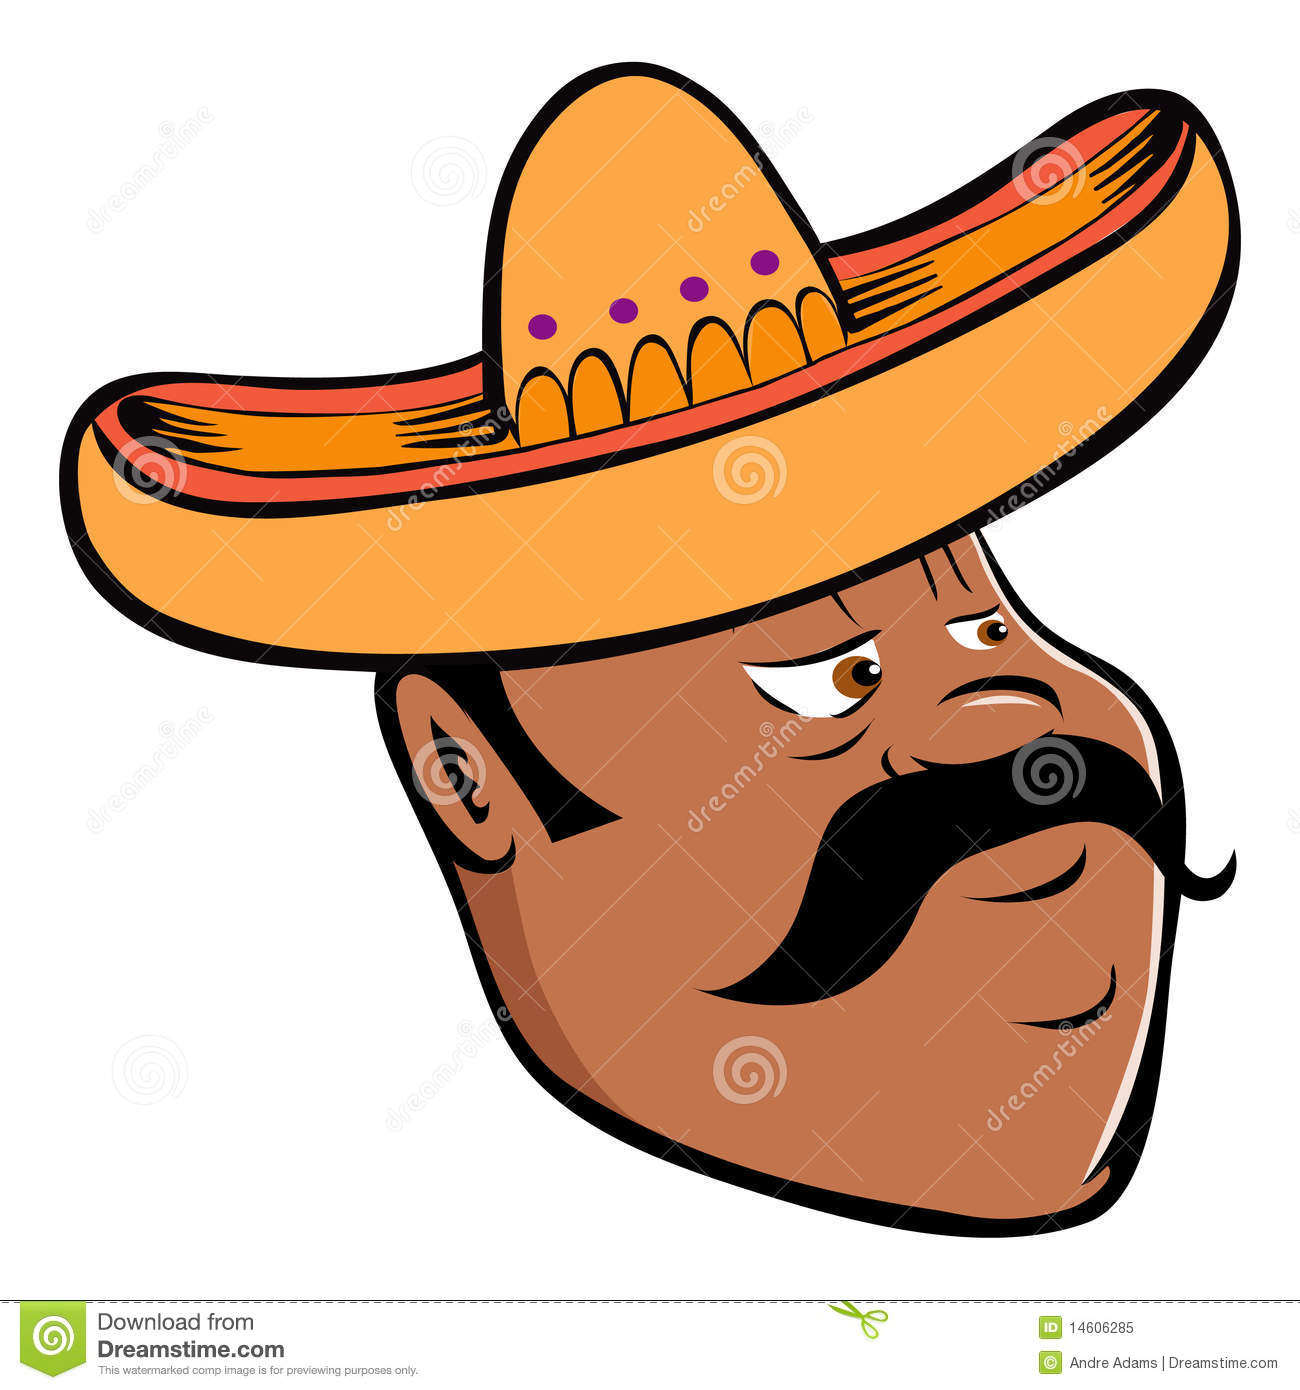 Mexican Man Head With Traditional Sombrero:  Mexican Sombrero Hat With Moustache Or Mustache Icons